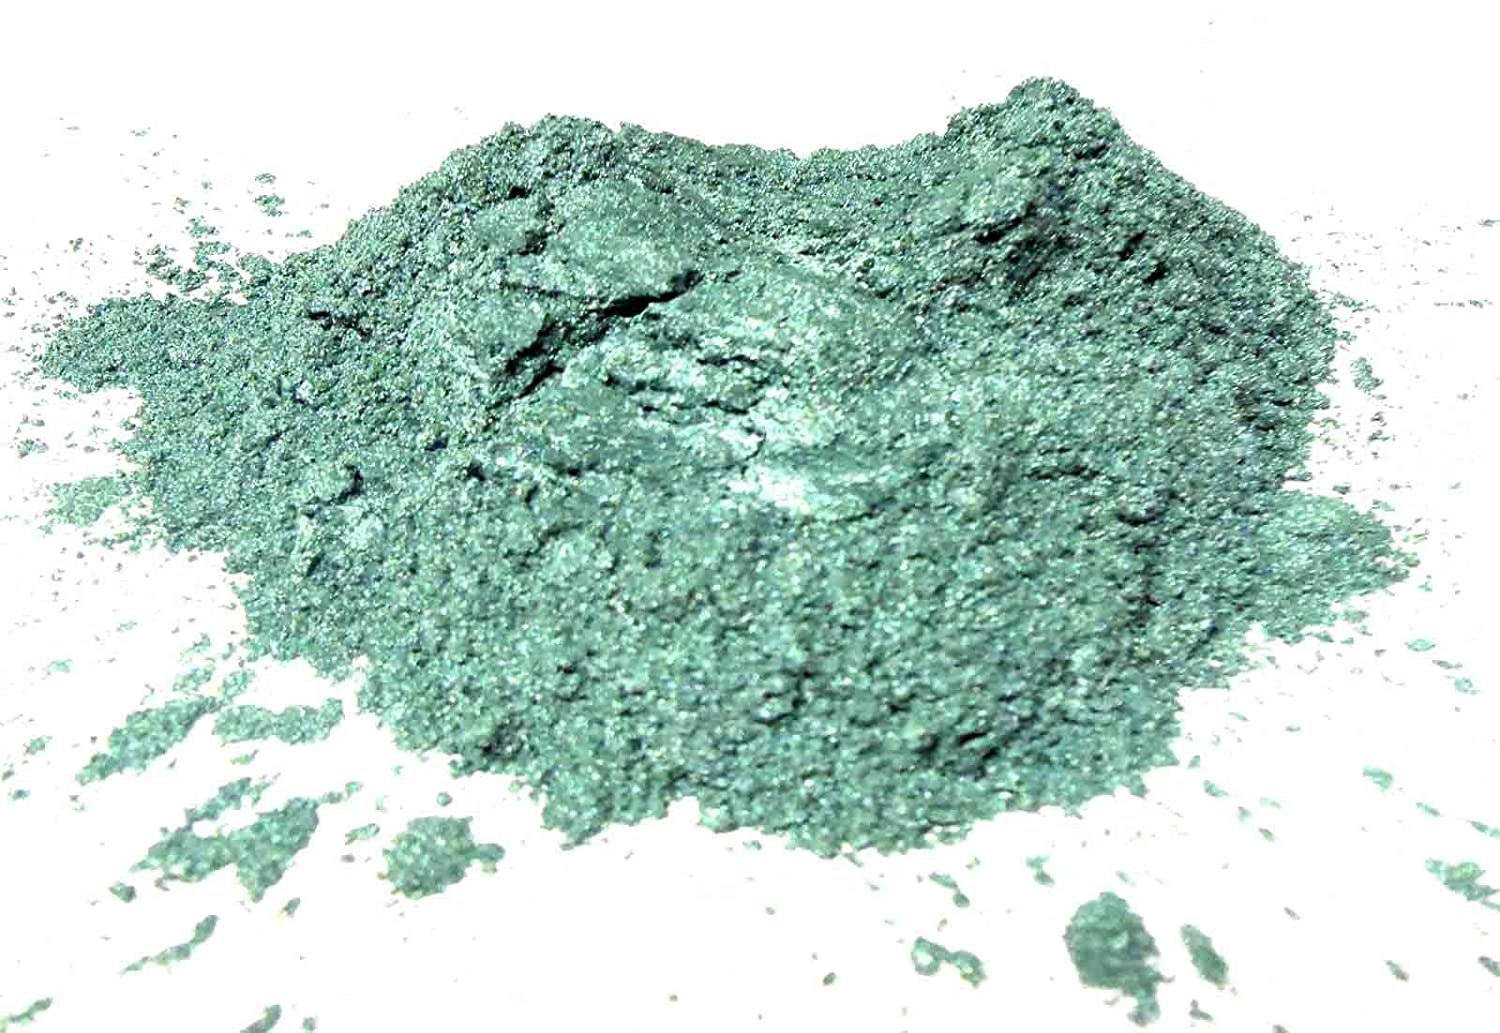 Dark Green Mica Powder15 grams, Metallic Green Mica Powder, Cosmetic Mica Powder for Lipsticks, Lip Balm, Bath bombs and More, Slice of the Moon EKS Entertainment Group